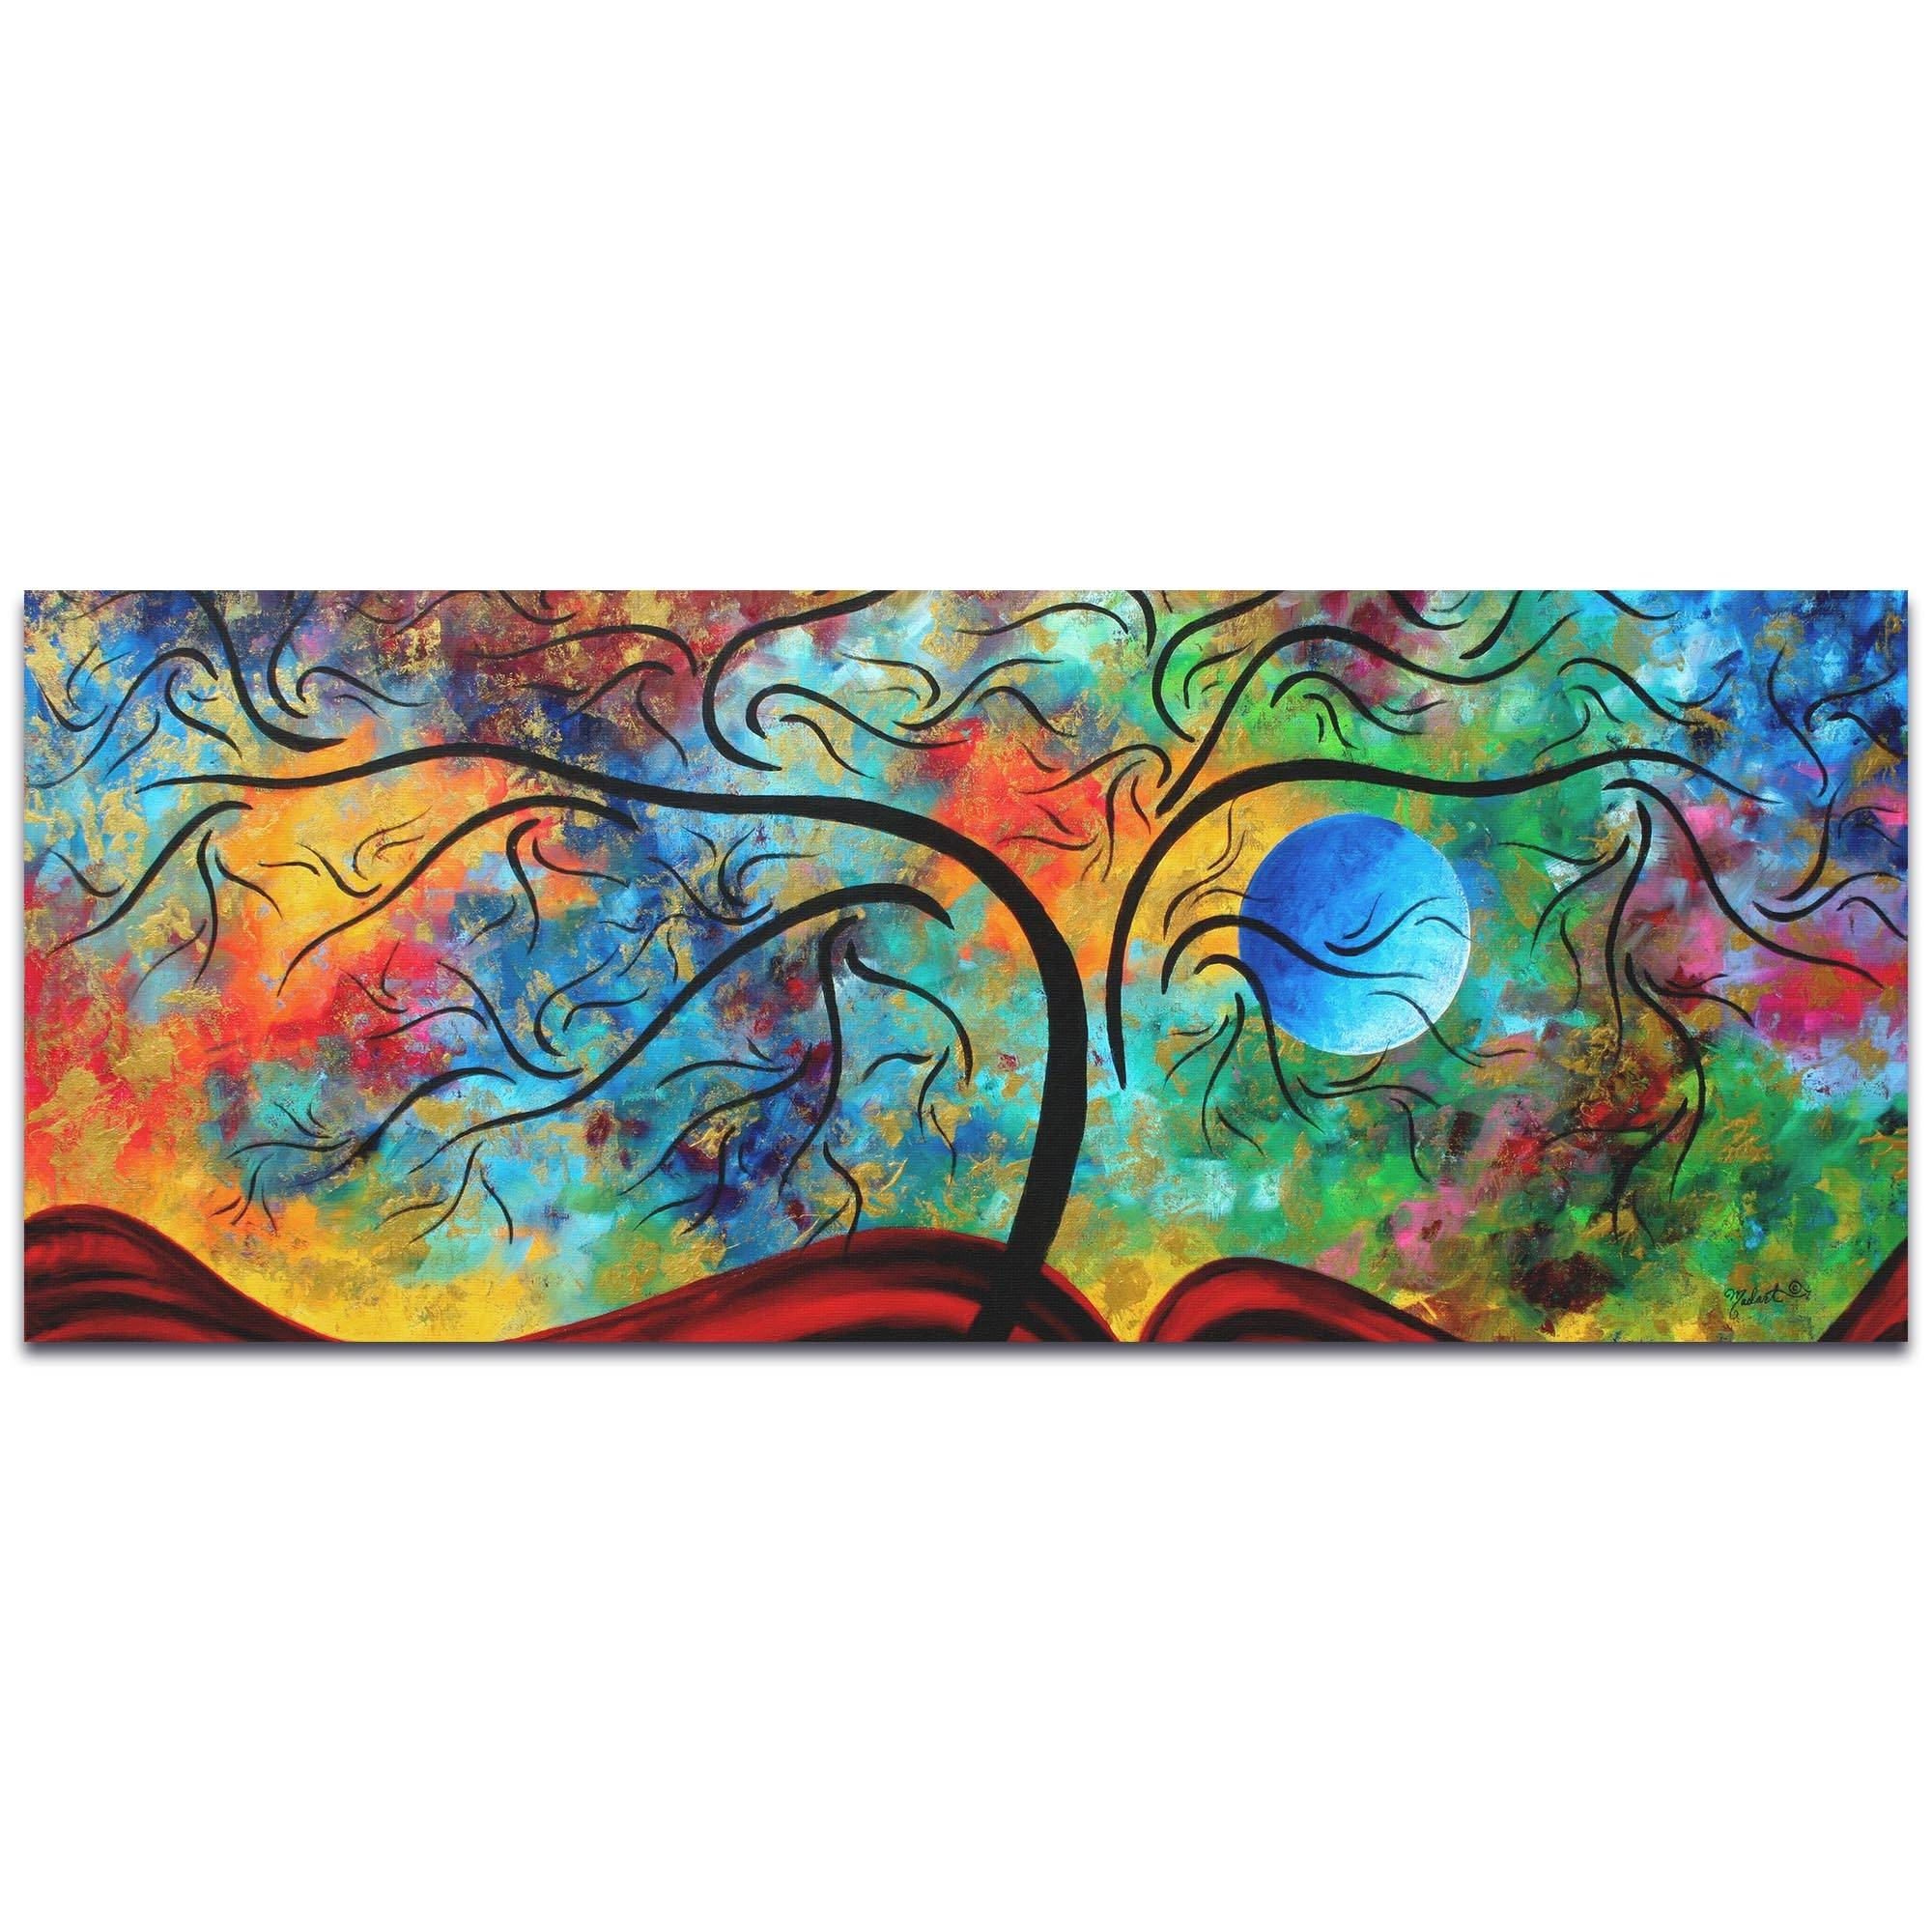 Metal Art Studio – Blue Moon Risingmegan Duncanson – Landscape Intended For Most Up To Date Megan Duncanson Metal Wall Art (View 13 of 25)